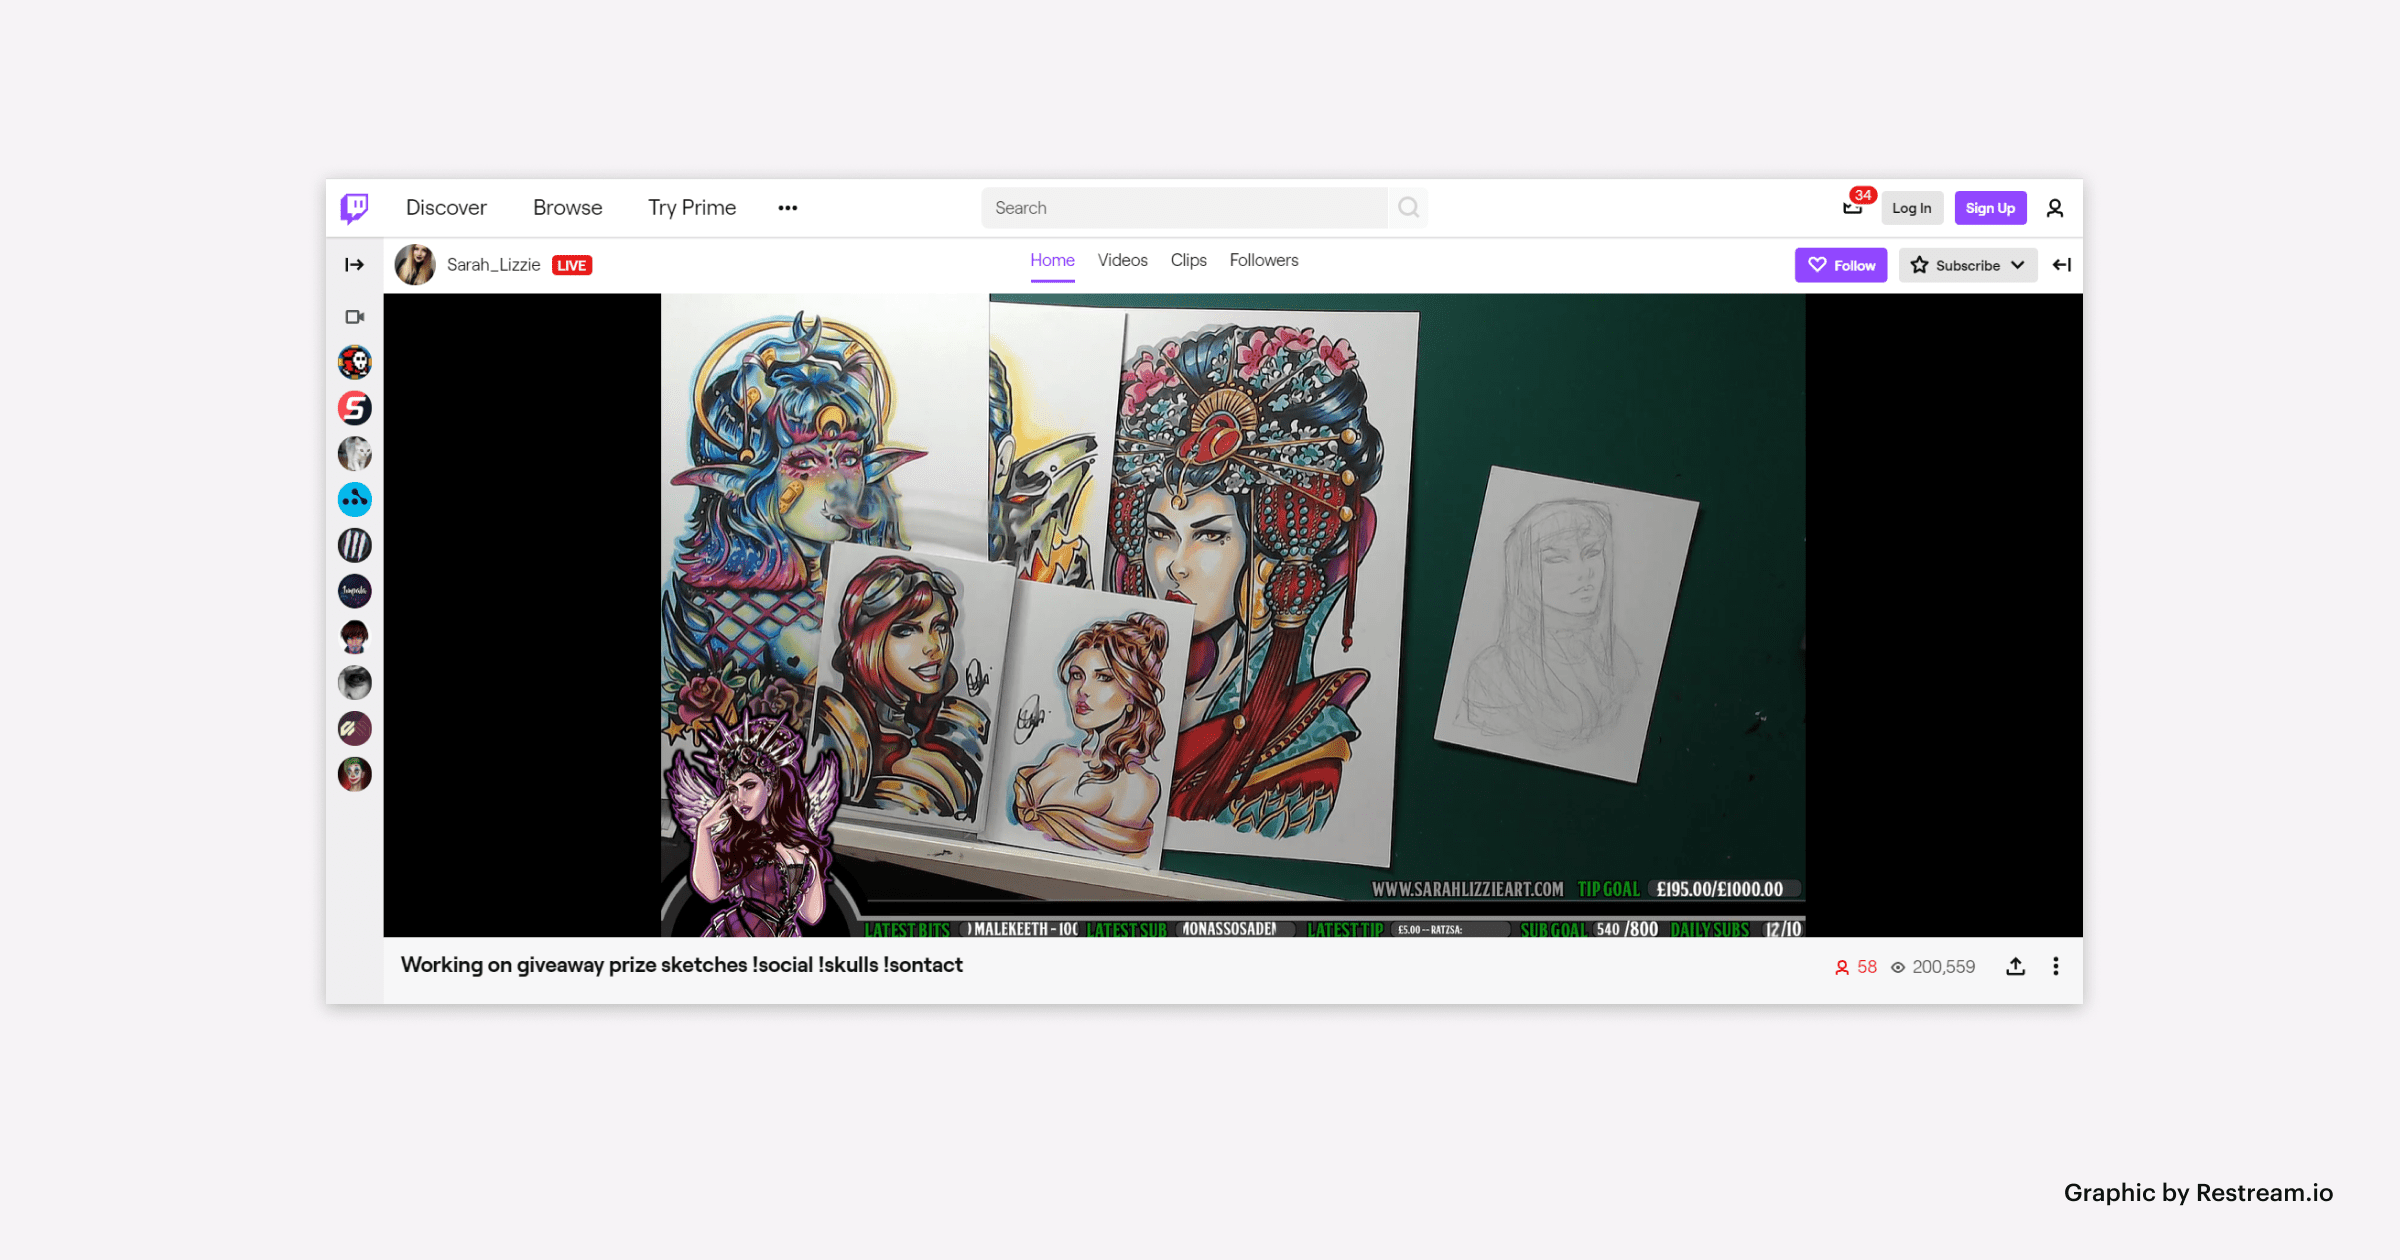 Twitch for streaming art